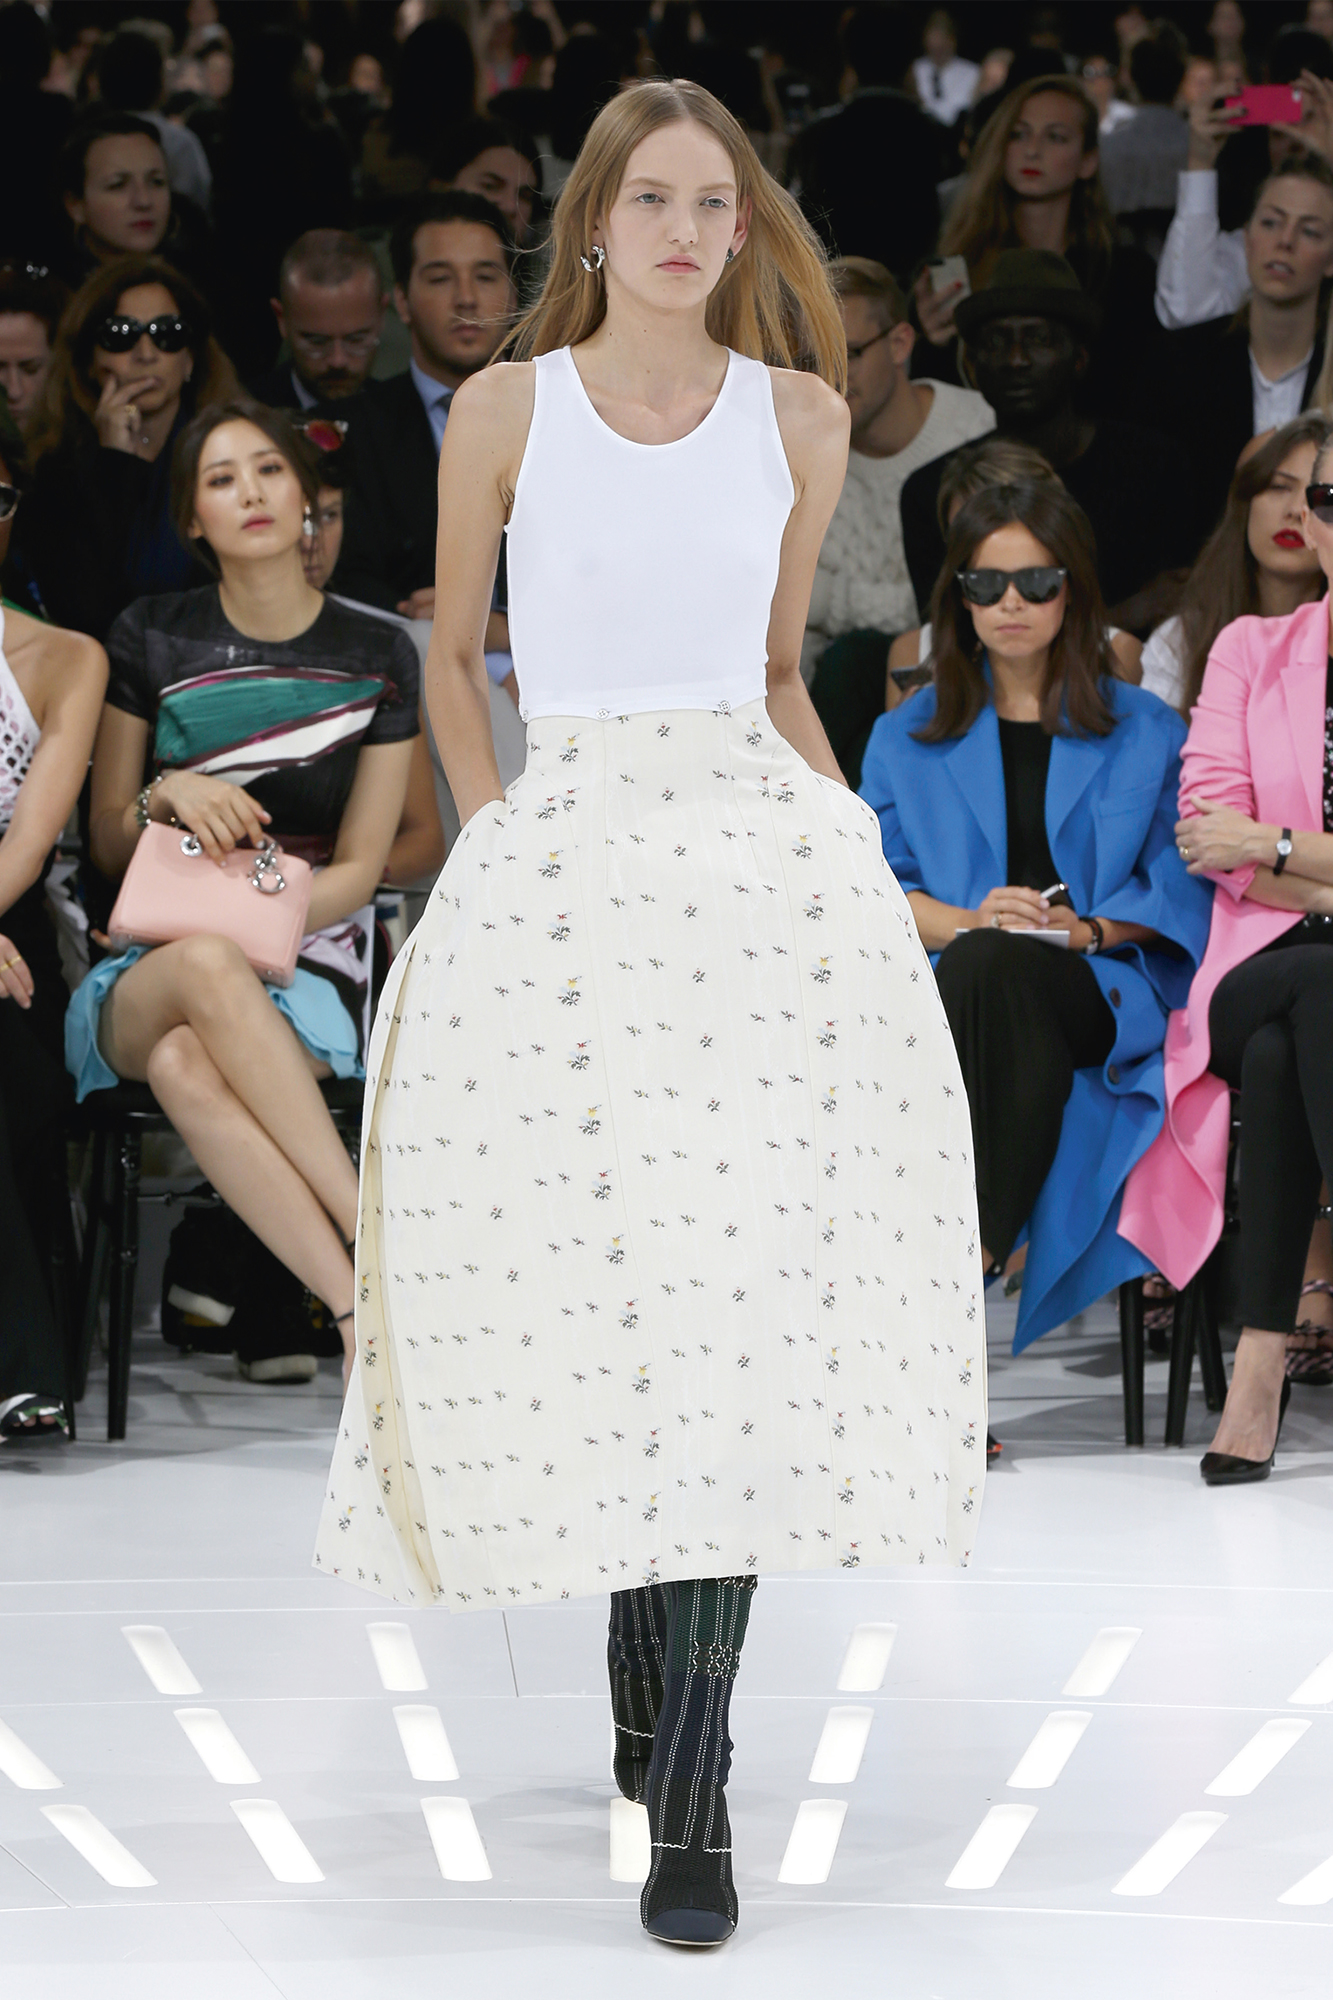 Christian Dior Haute Couture Spring-Summer Ready To Wear Dresses & Accessories Collection 2015-16 (10)